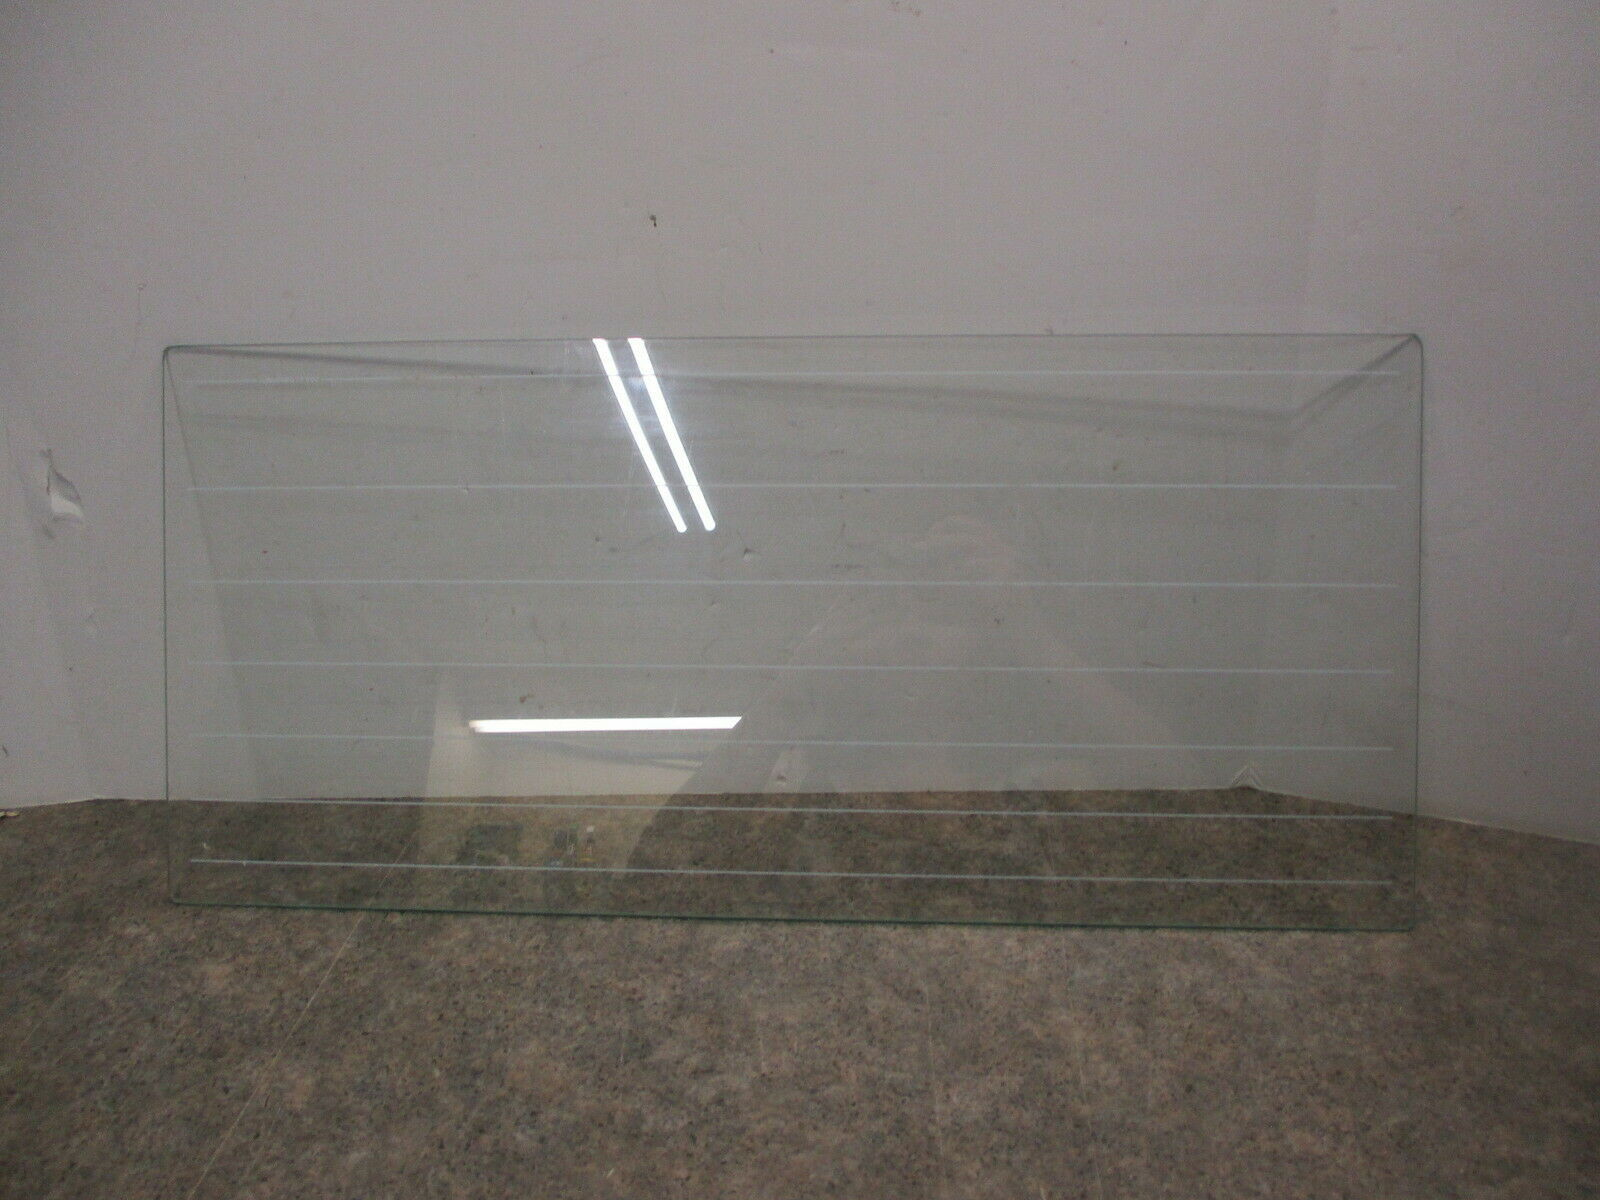 WHIRLPOOL REFRIGERSTOR CRISPER GLASS 22 1/2 X 10 3/8 (SCRATCHES)  PART # 2210047 - $45.00